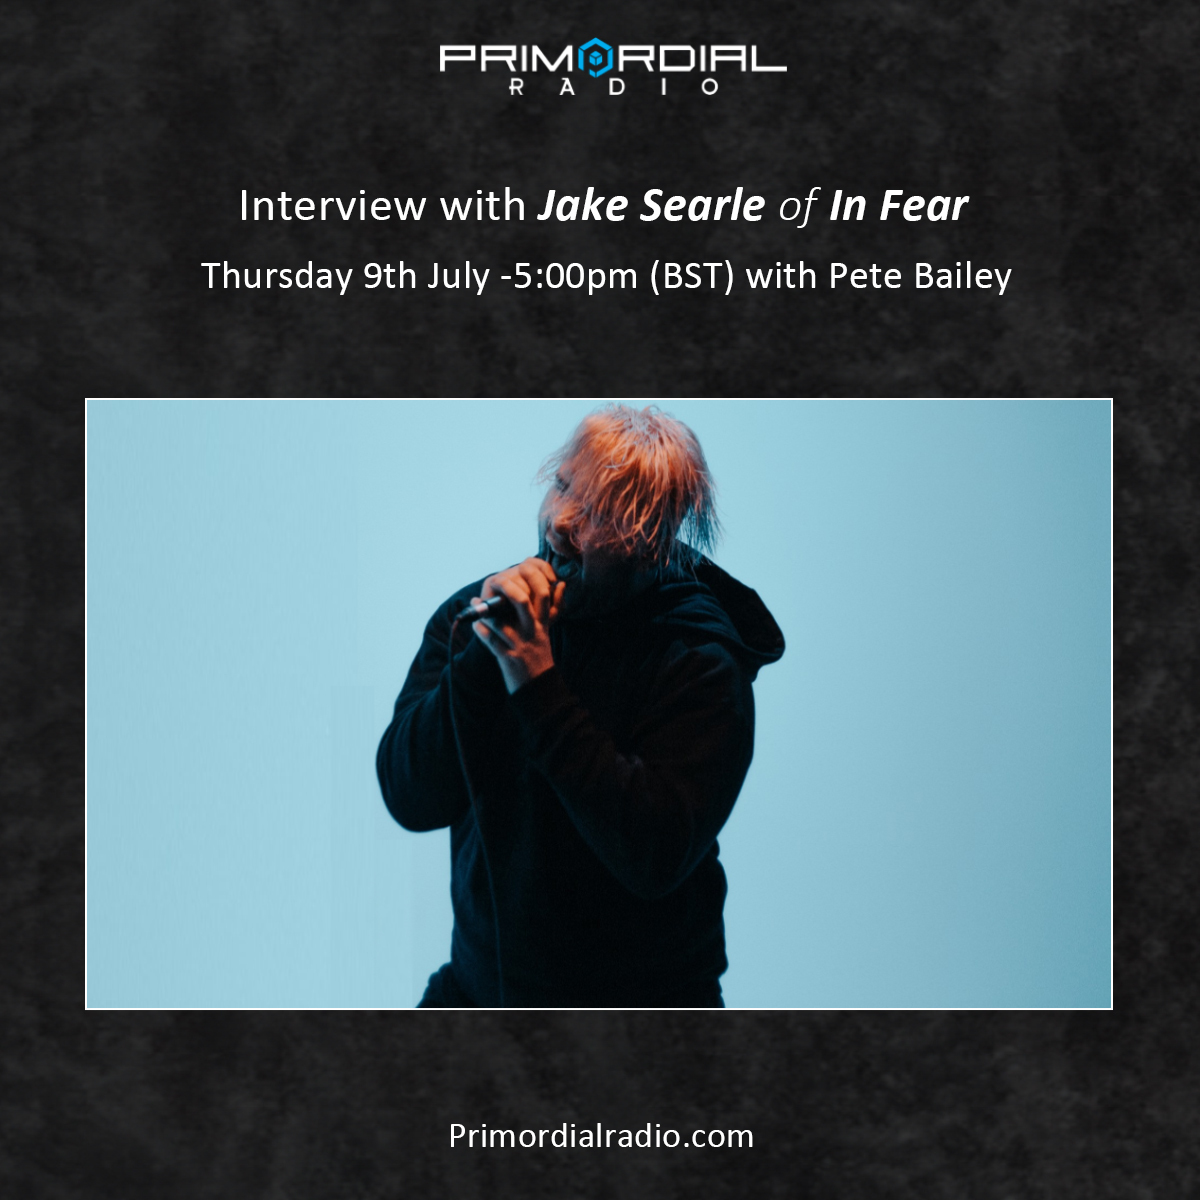 Interview with Jake Searle of InFear on PrimordialRadio